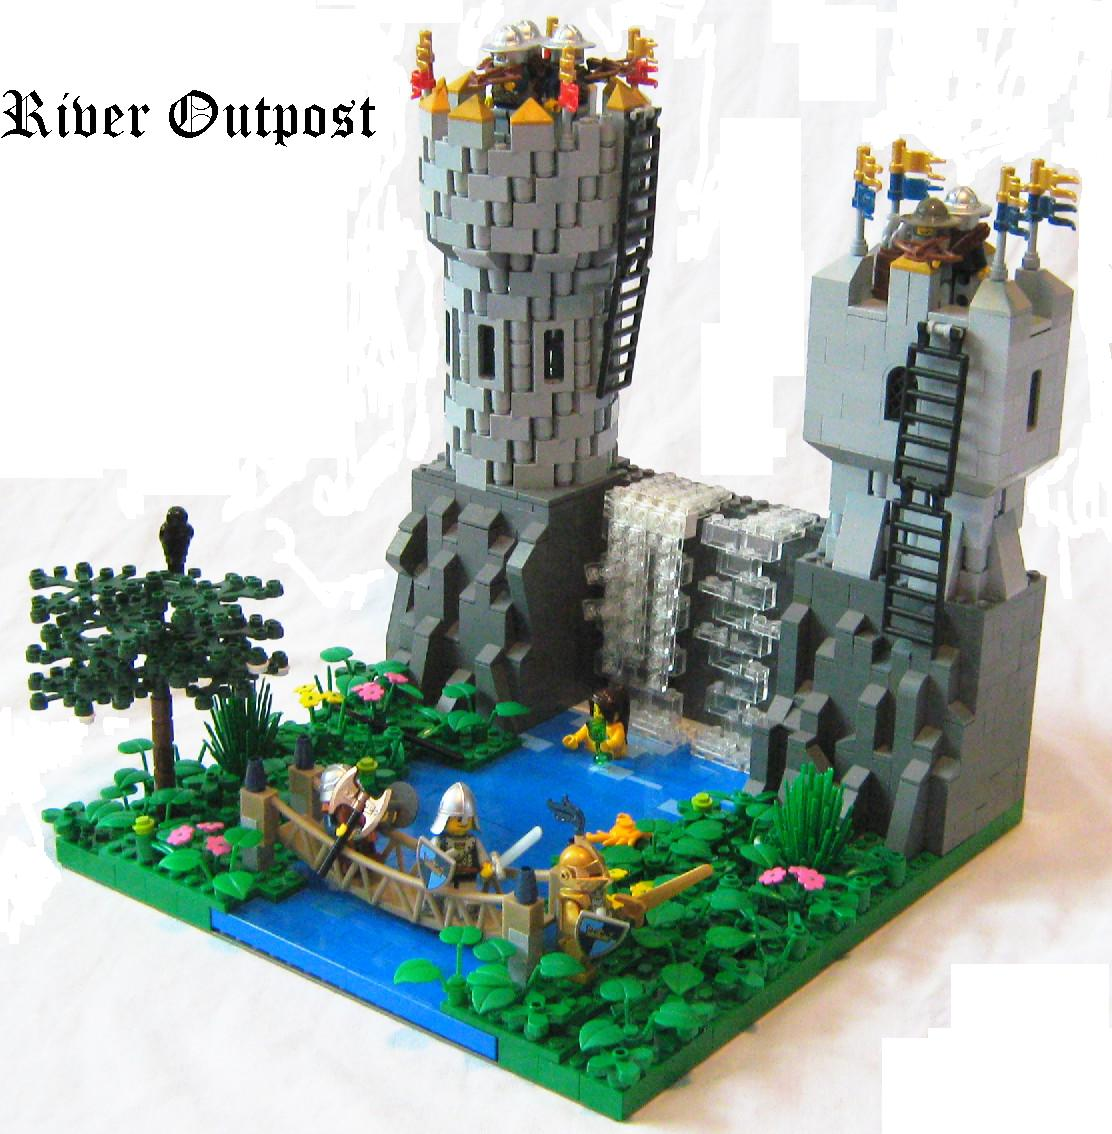 river_outpost_008.jpg